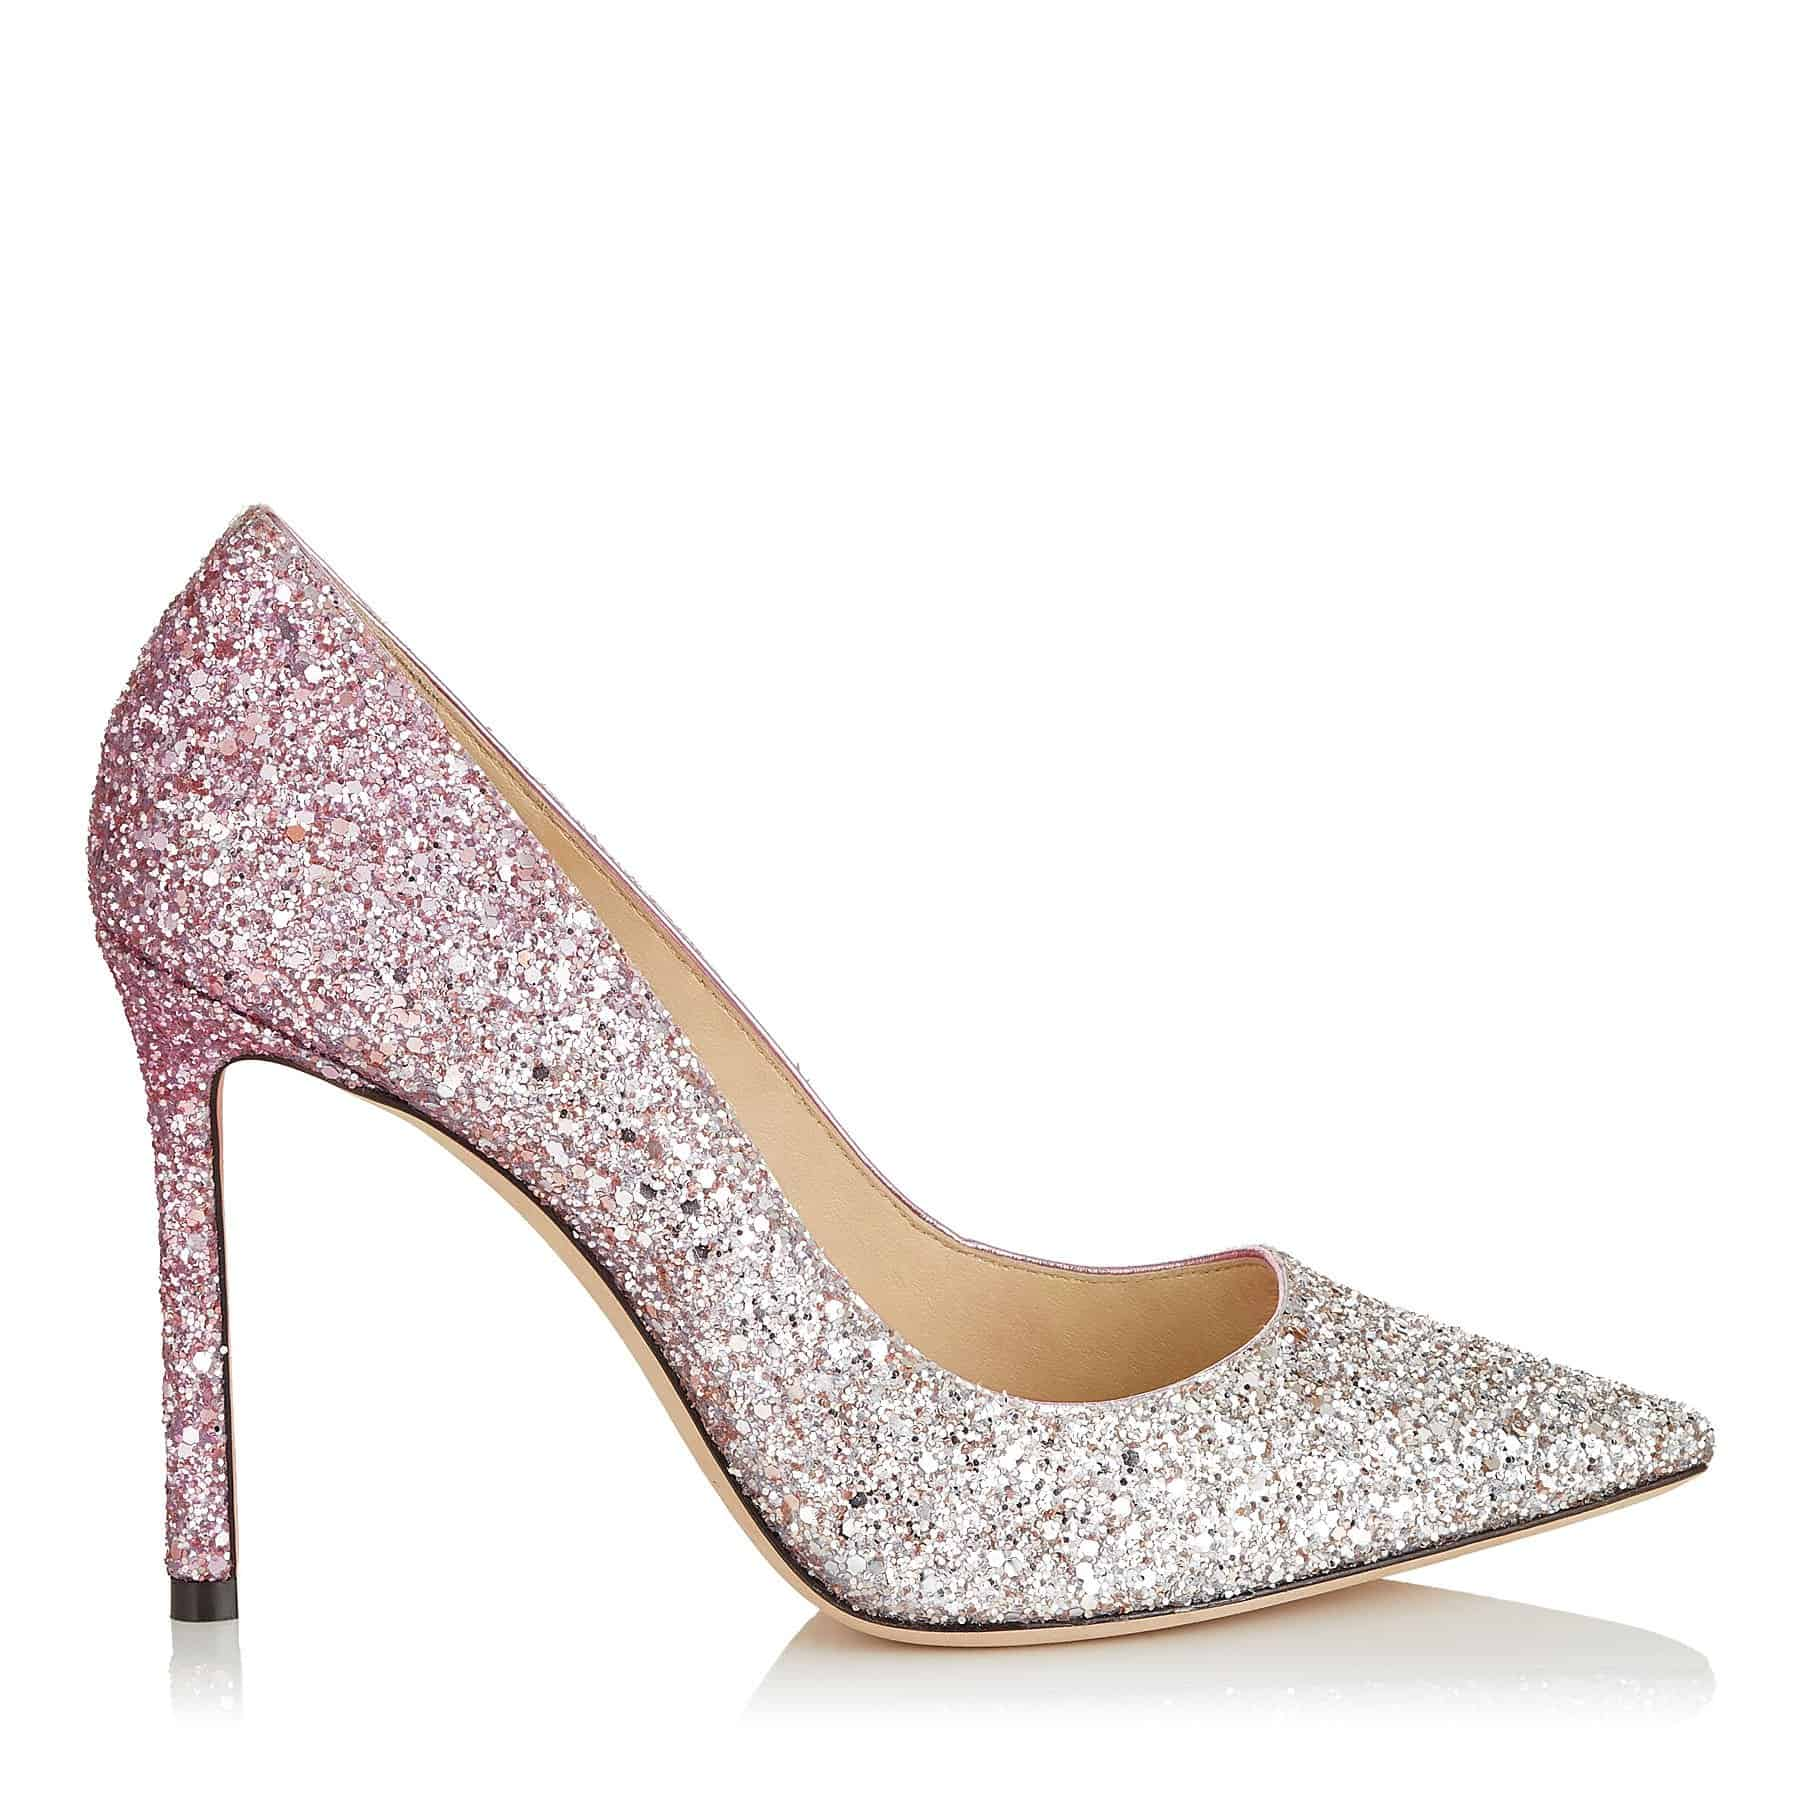 Platinum And Flamingo Ice Glitter Dégradé Fabric Pointy Toe Pumps Jimmy  Choo Wedding Shoes